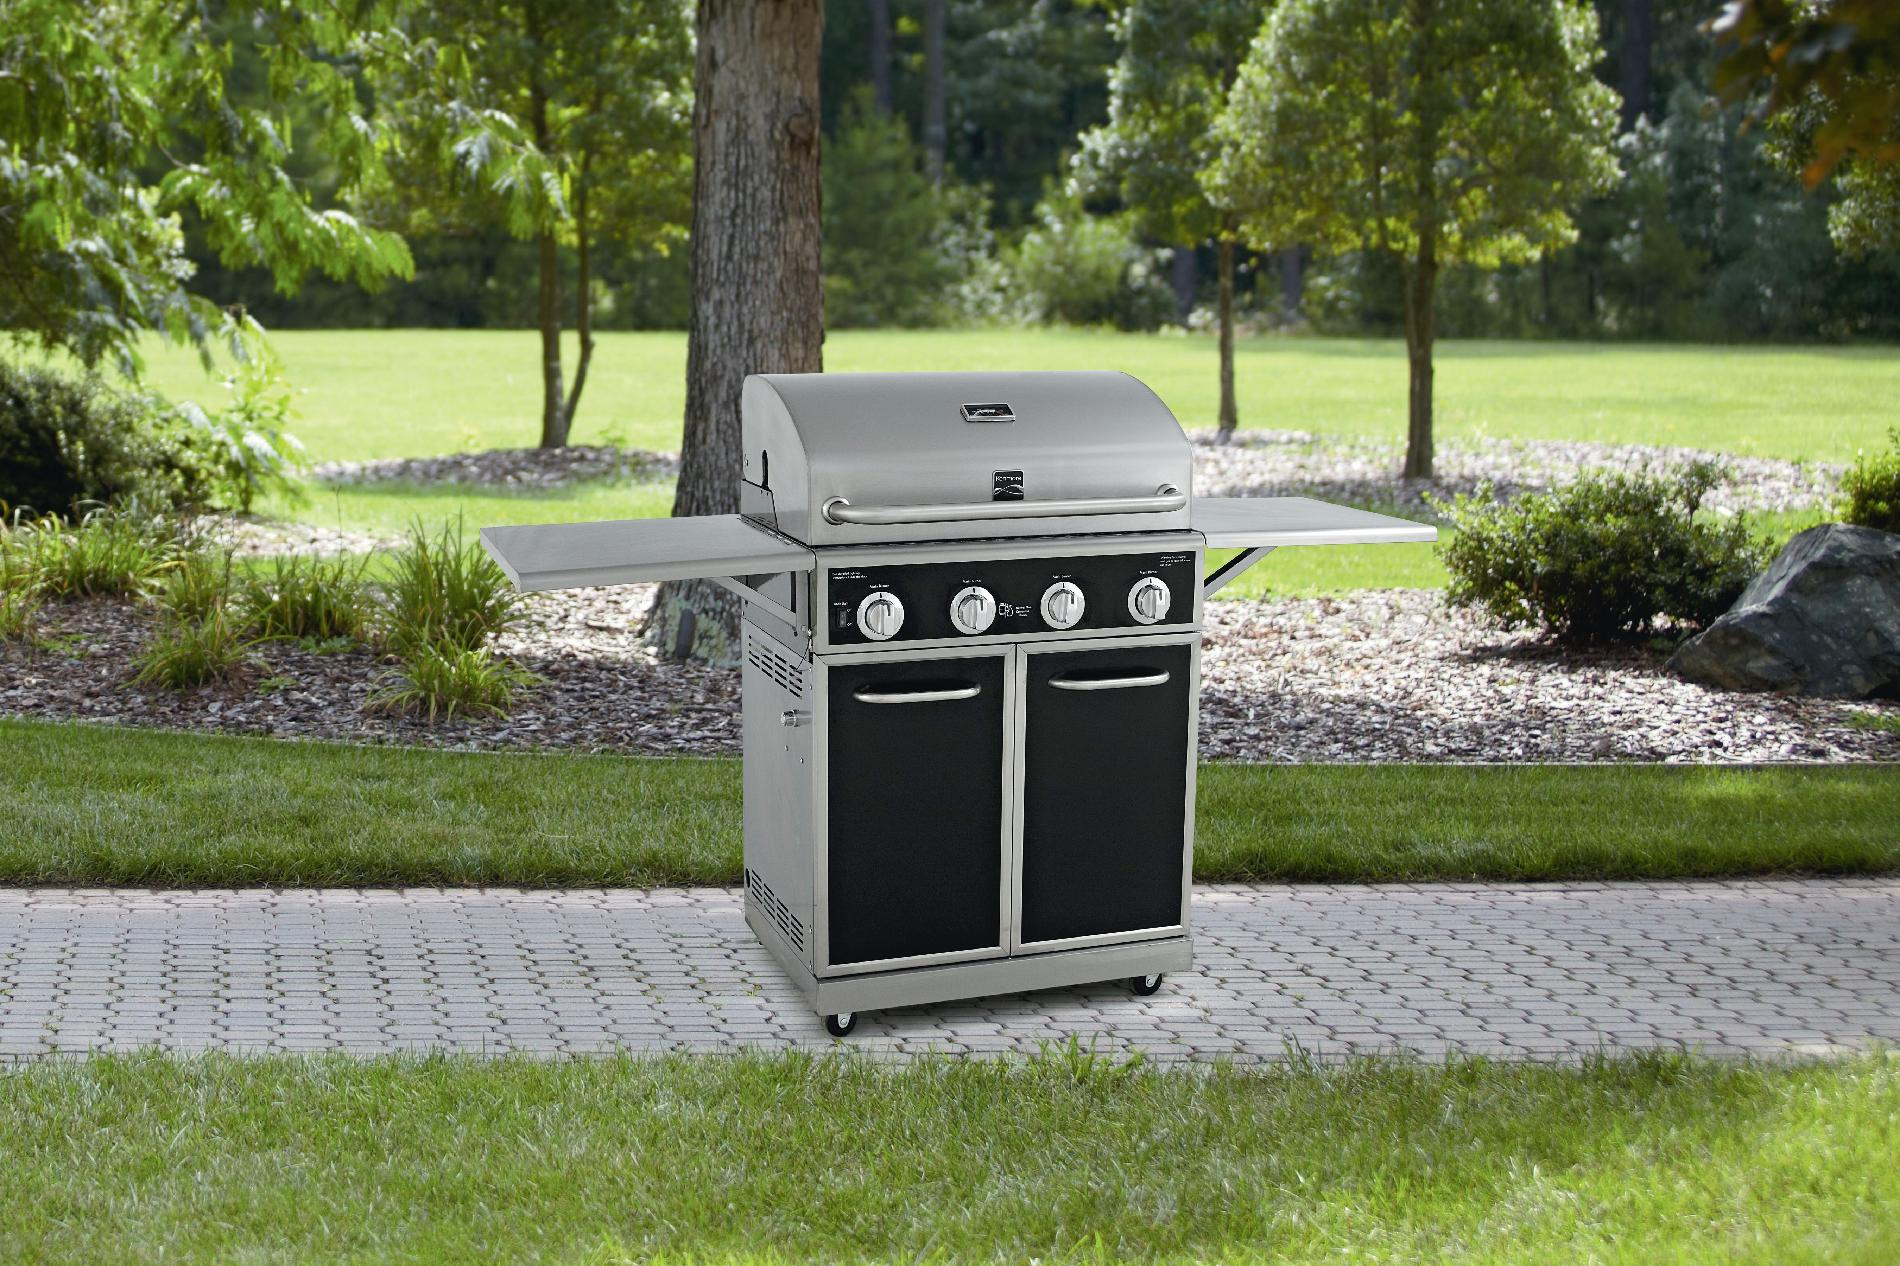 Black-4-Burner-Gas-Grill-With-Folding-Side-Shelves-and-lit-knobs